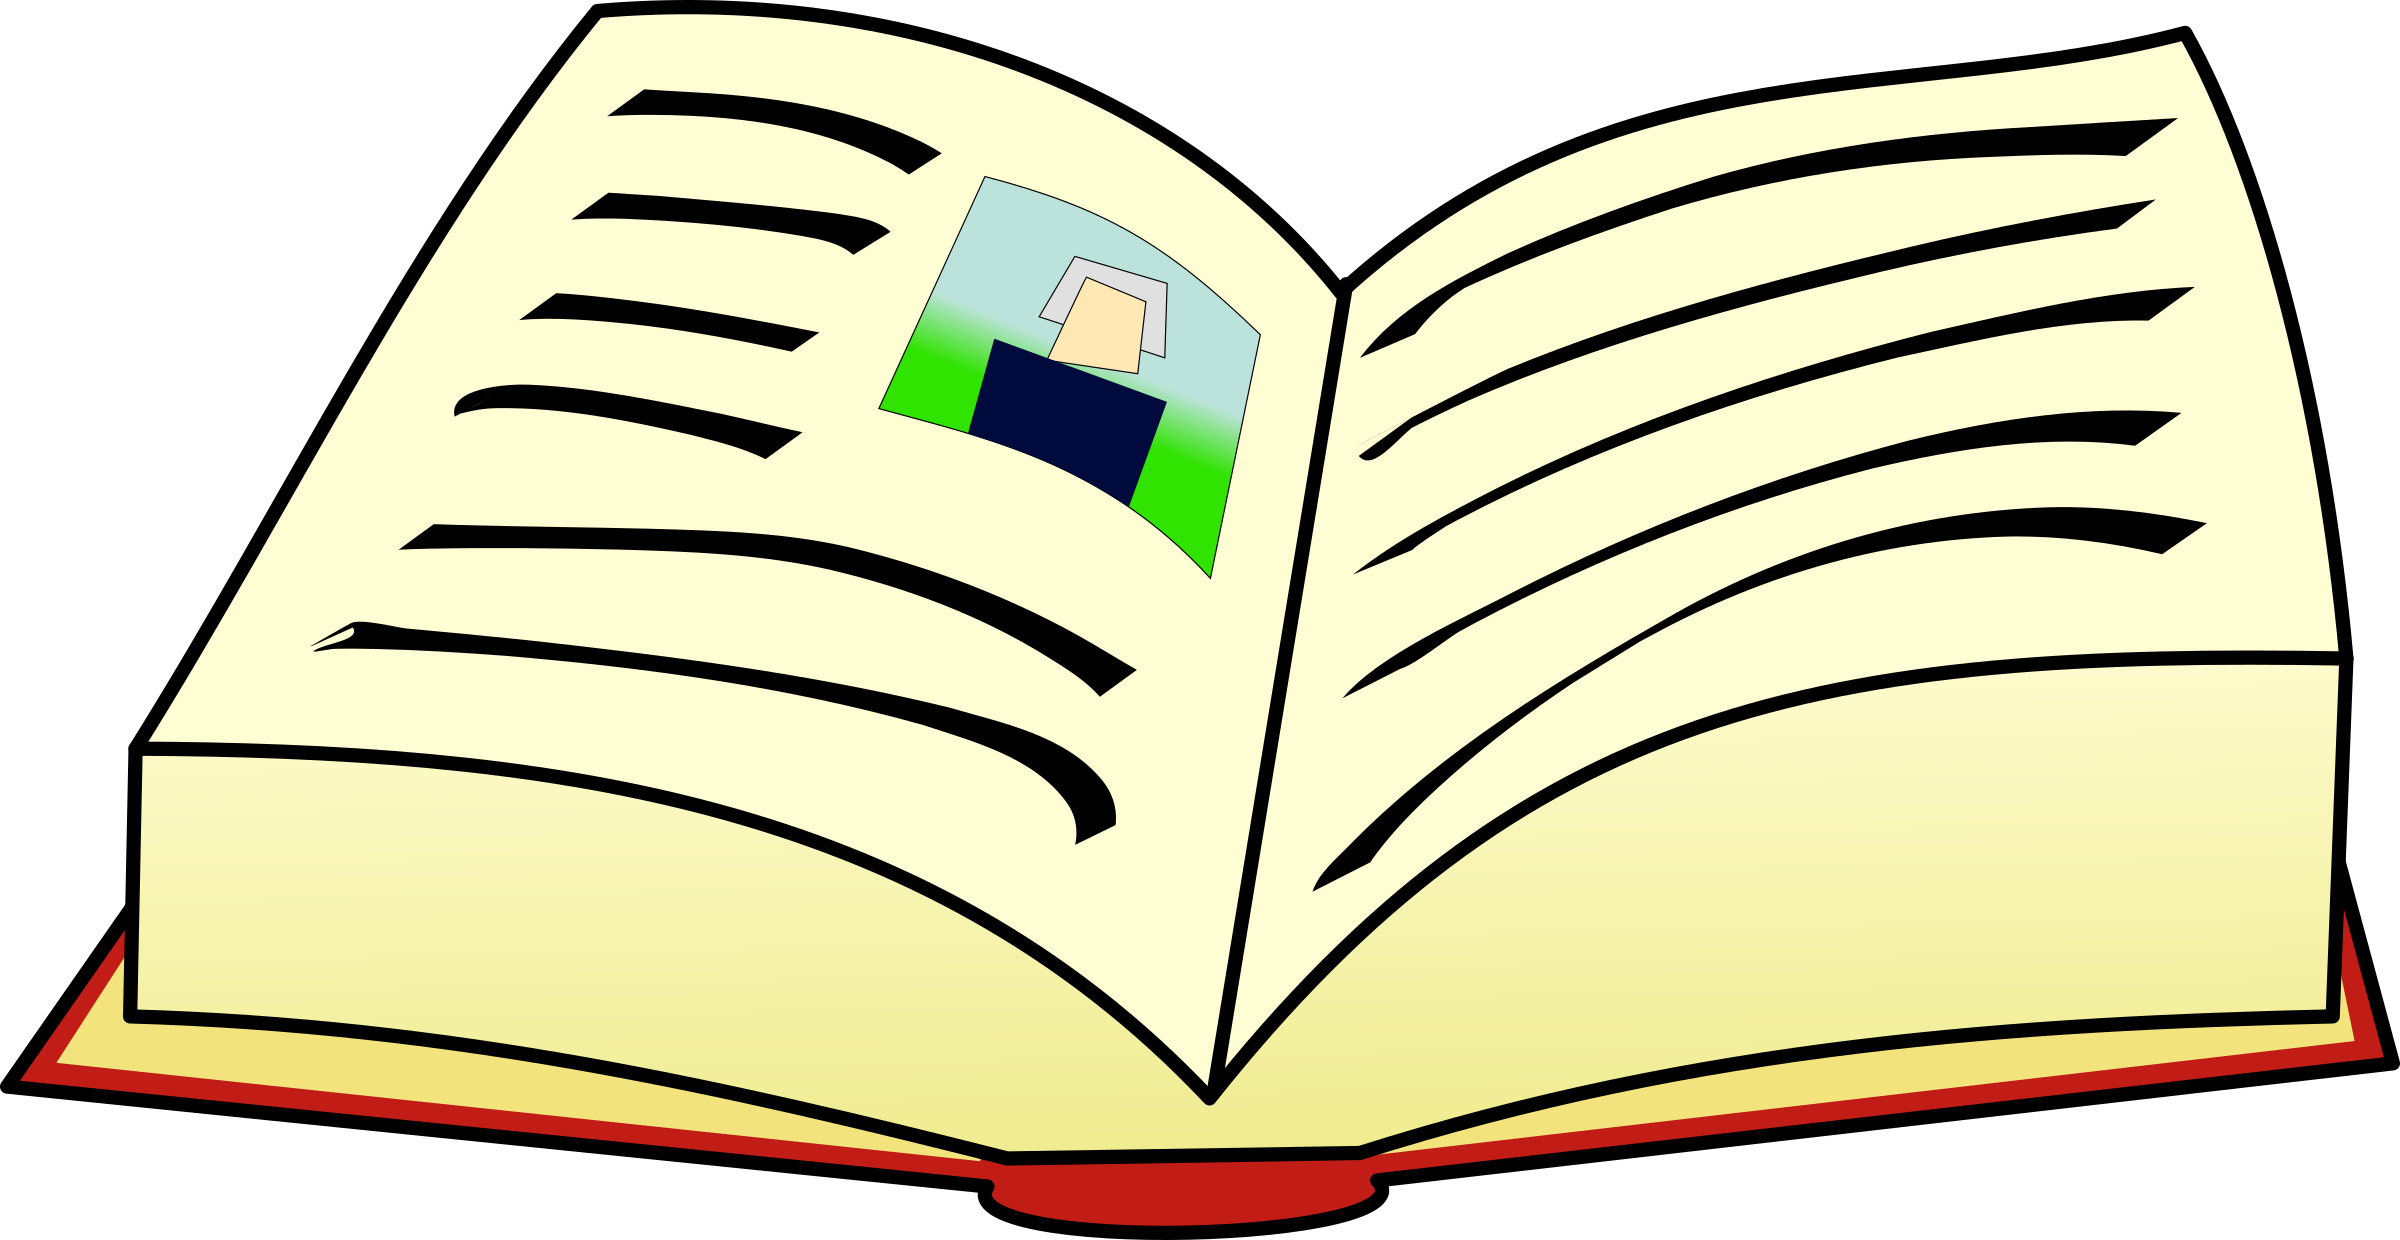 Cartoon book png. Open image